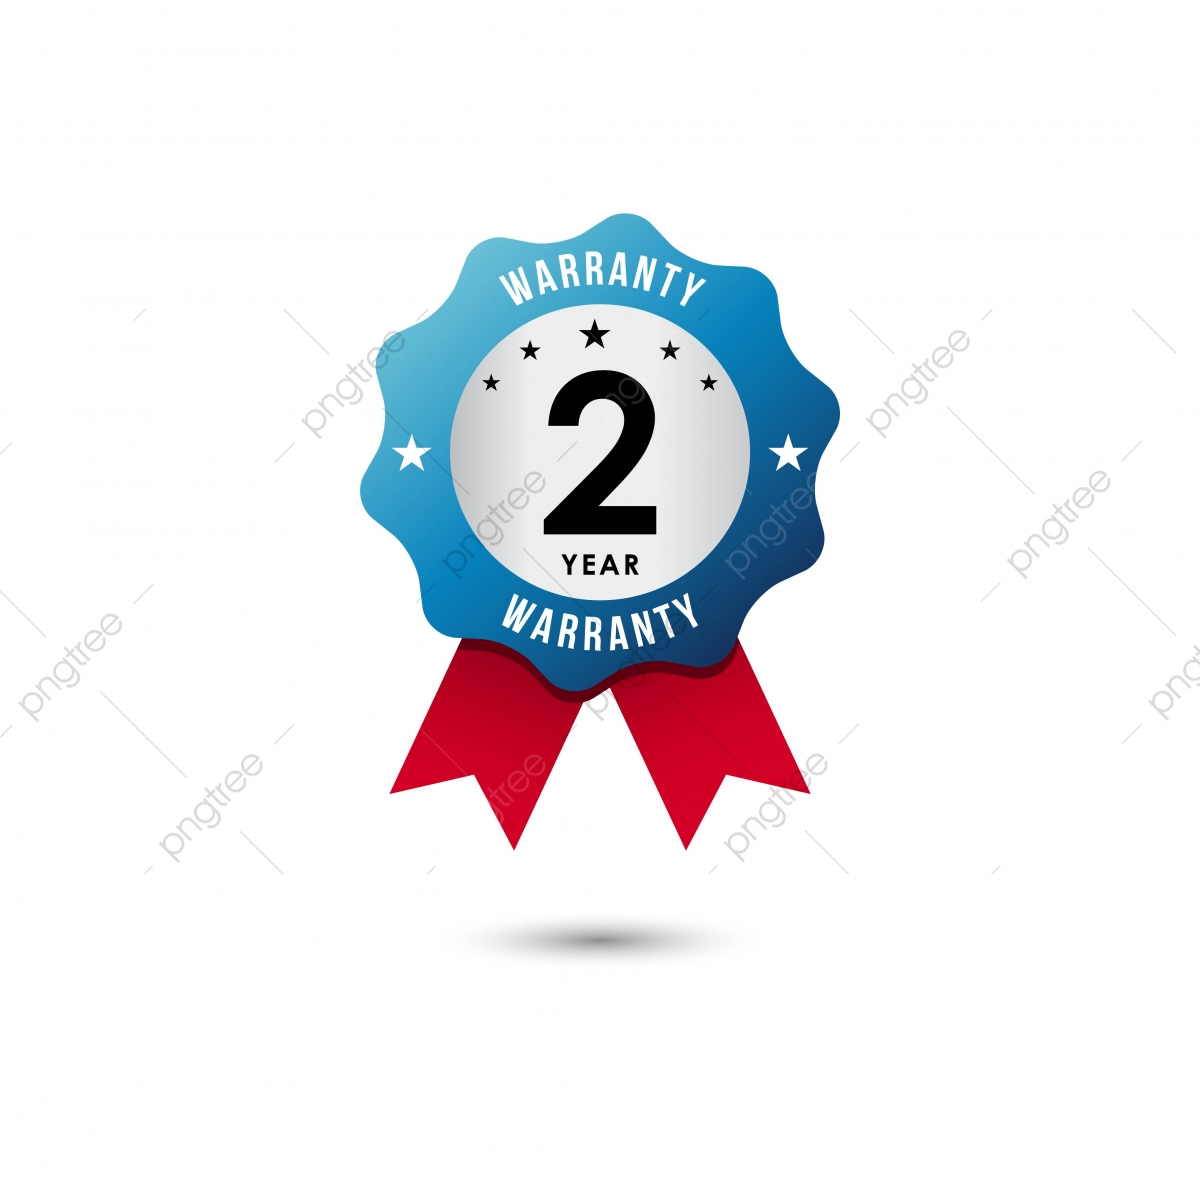 2 Year Warranty Vector Template Design Illustration, Warranty, 2.